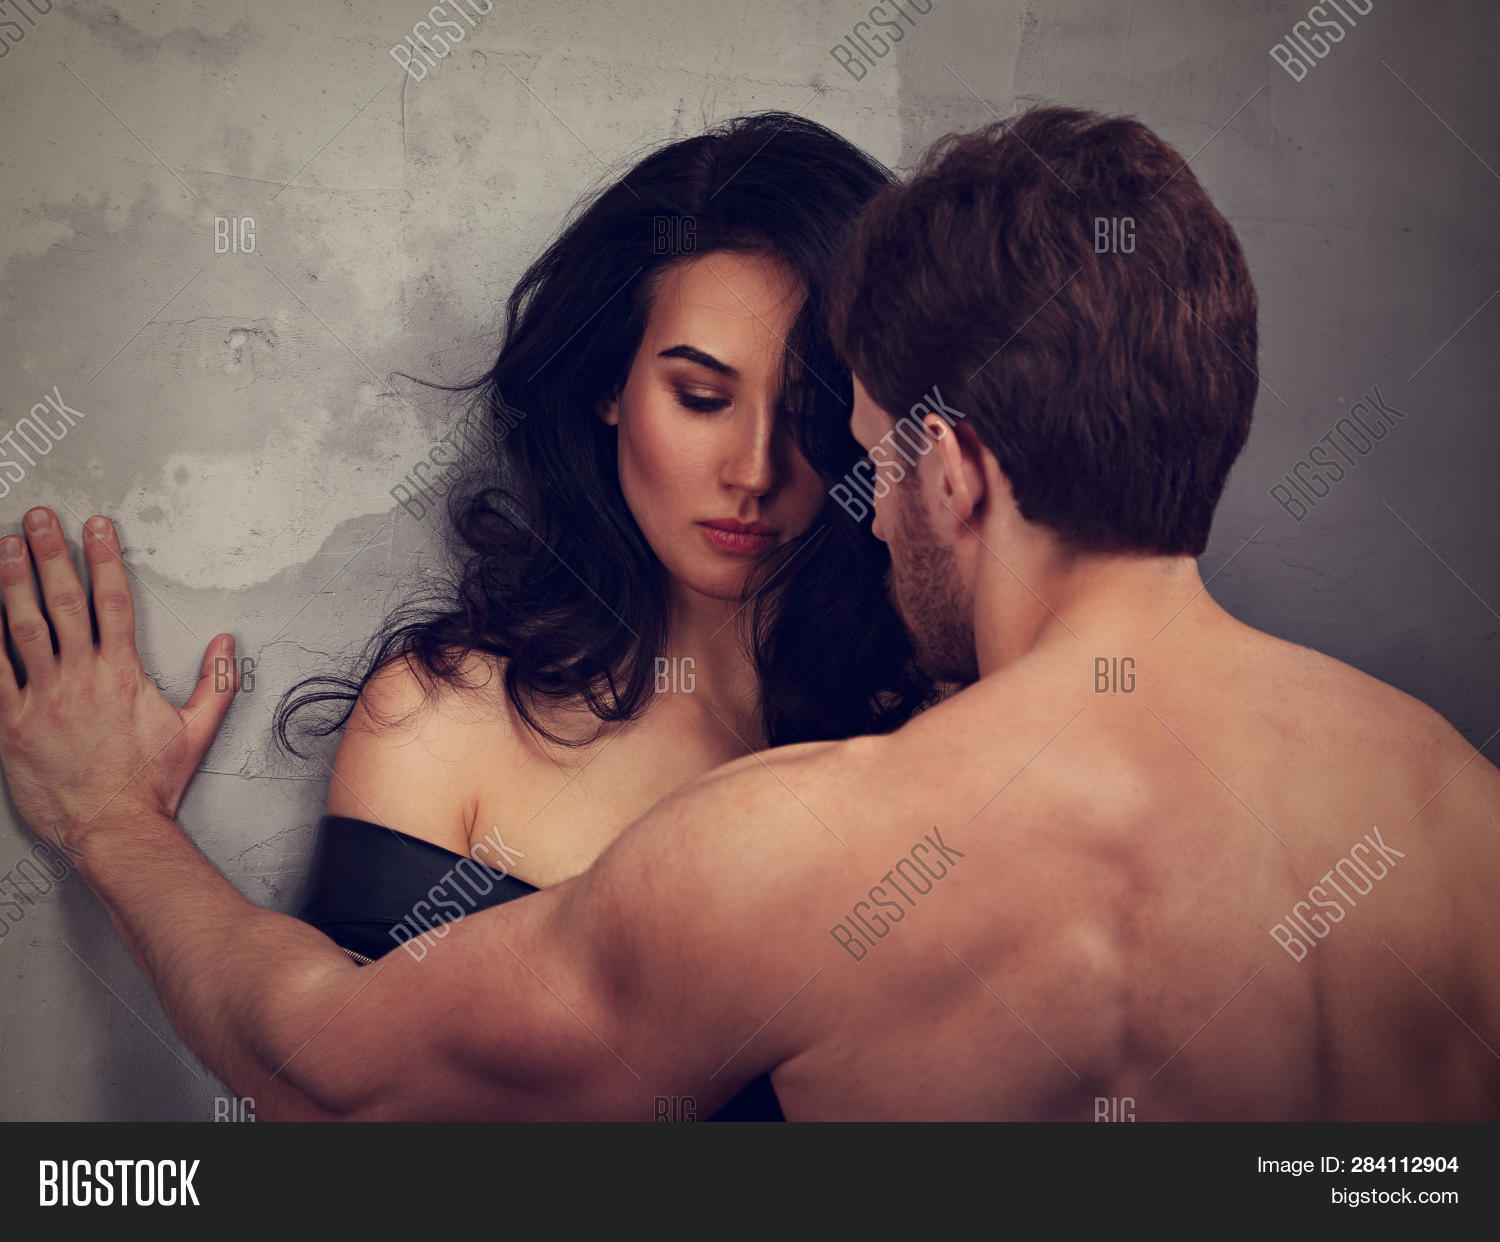 Valentines,adorable,adult,attractive,beautiful,beauty,boyfriend,caucasian,couple,dating,day,desire,embrace,emotional,erotic,face,fashion,female,girl,girlfriend,happiness,happy,hug,intimacy,intimate,kiss,kissing,lifestyle,love,lovers,male,man,passion,passionate,people,relationship,relax,romance,romantic,seduction,sensual,sex,sexual,sexy,sharing,together,togetherness,two,woman,young